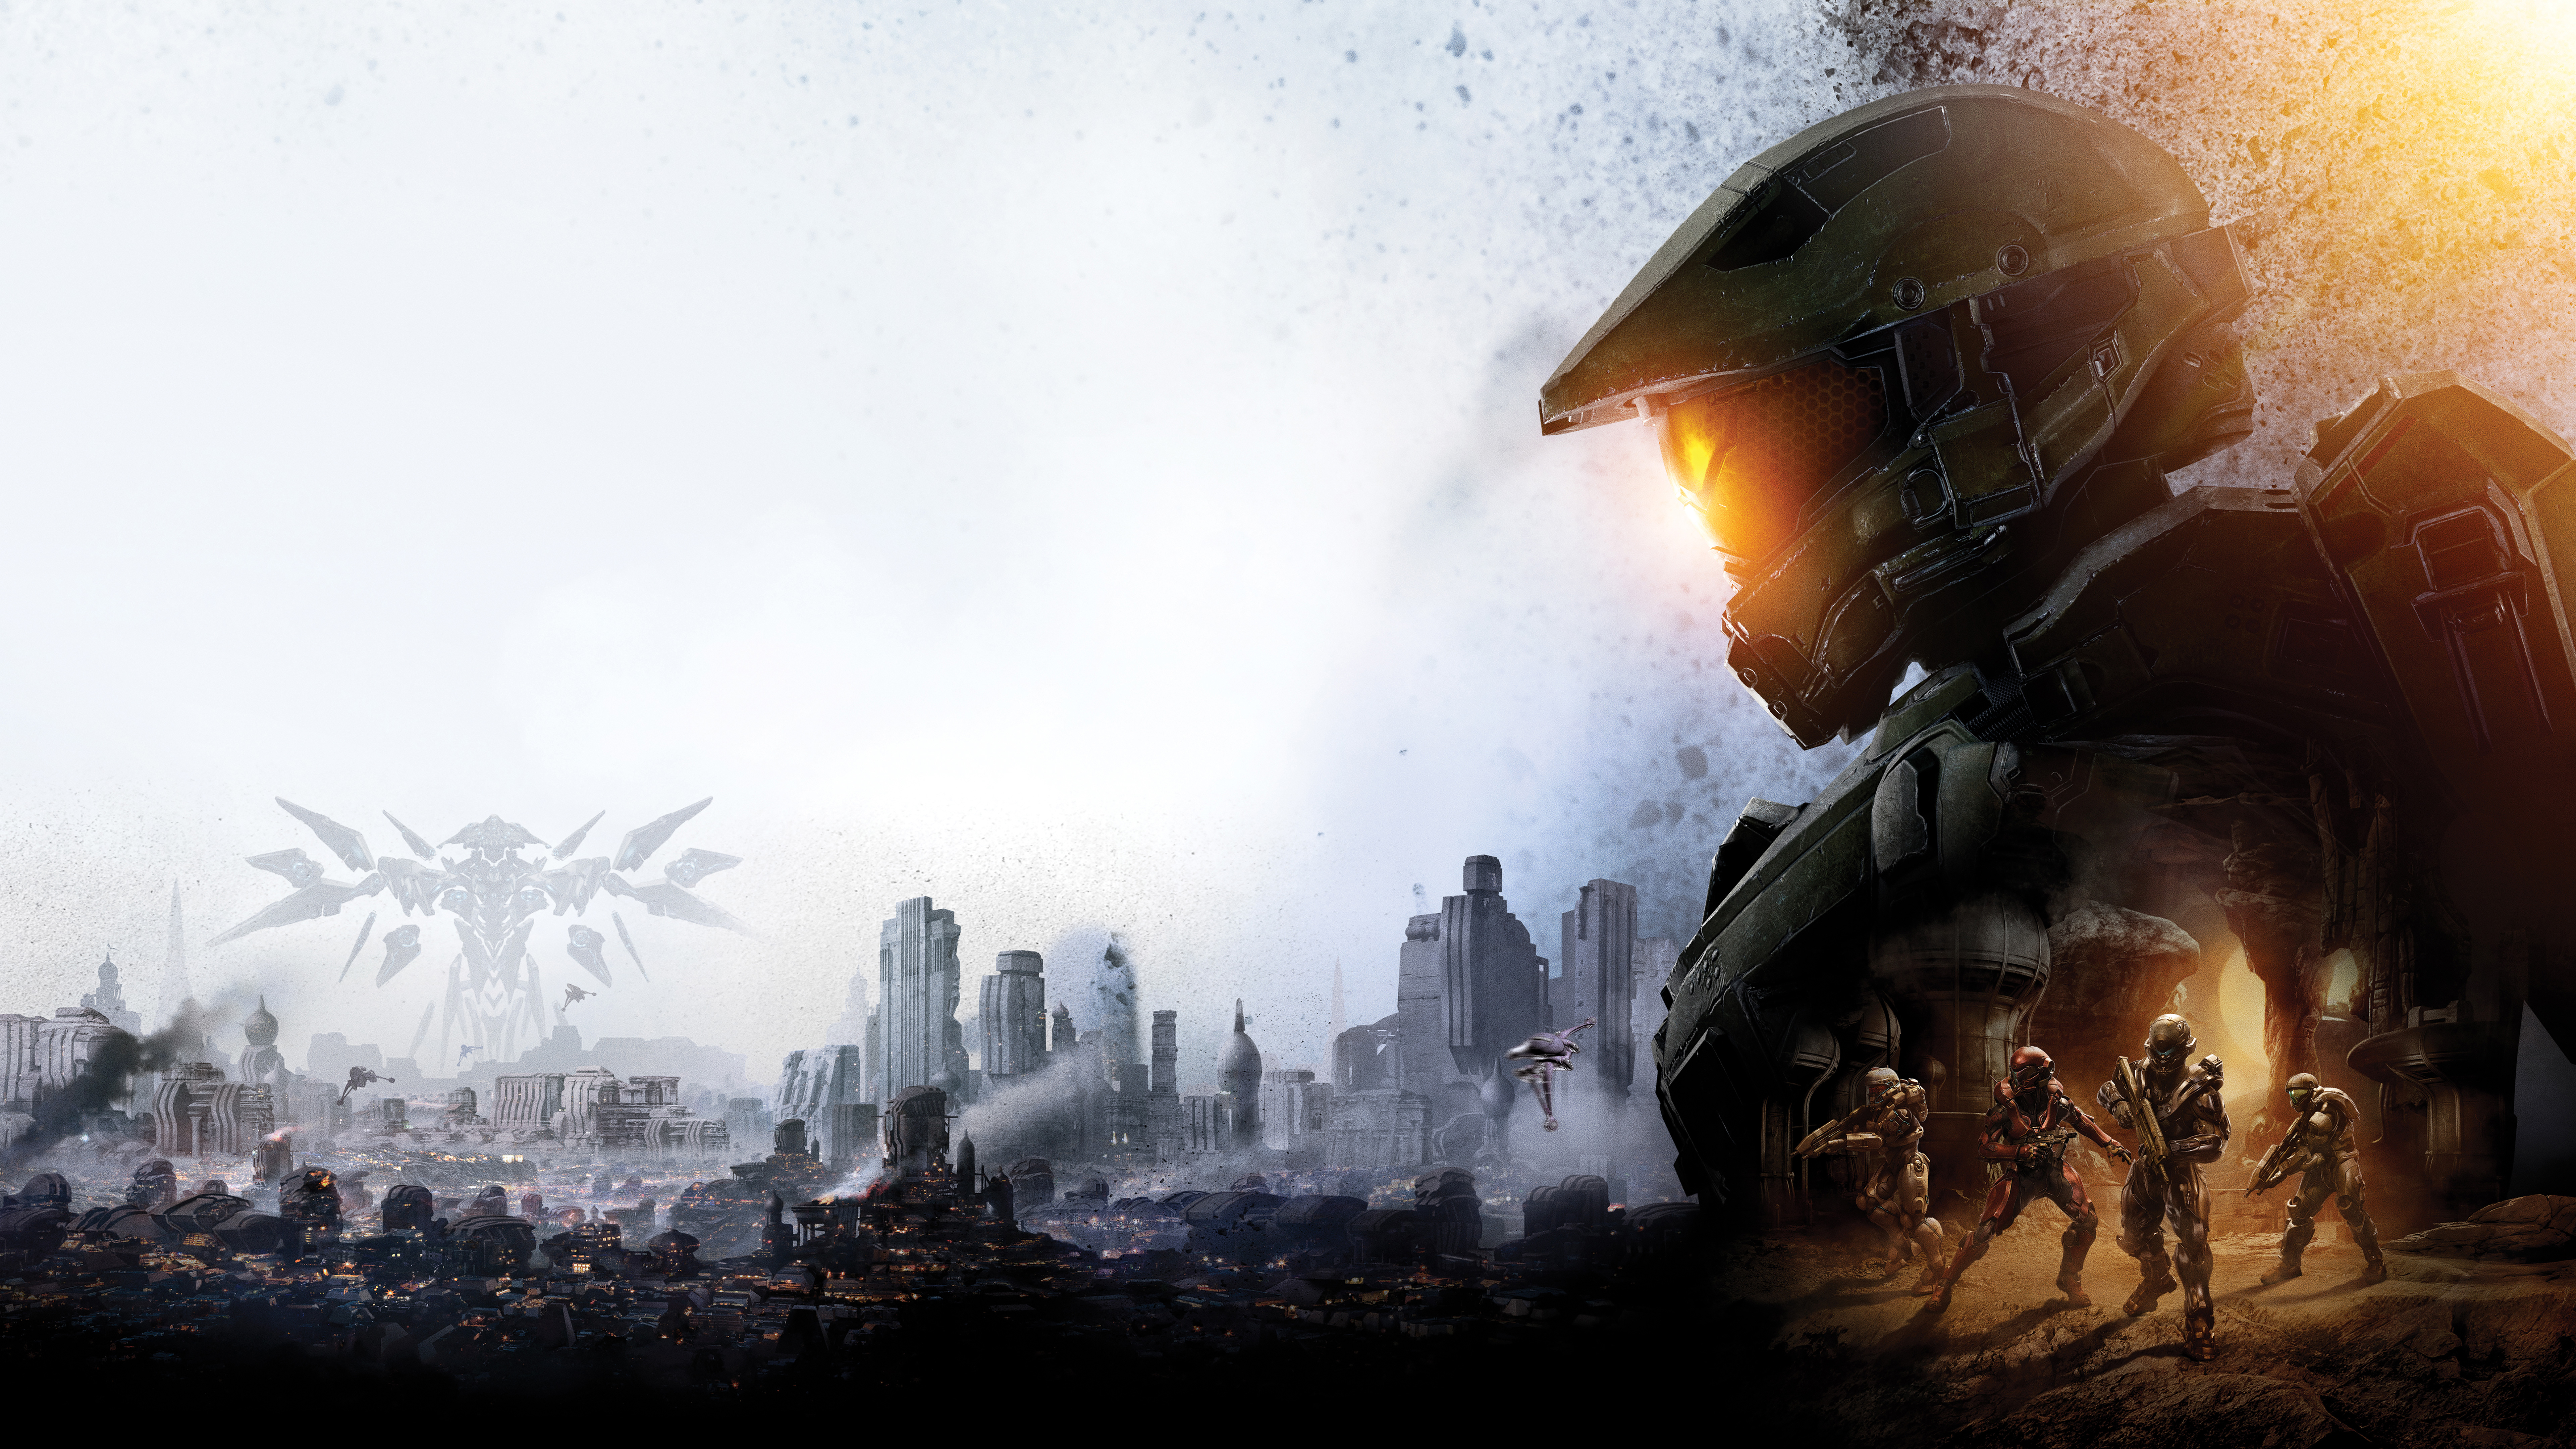 7680x4320 Master Chief Halo 5 8k 8k Hd 4k Wallpapers Images